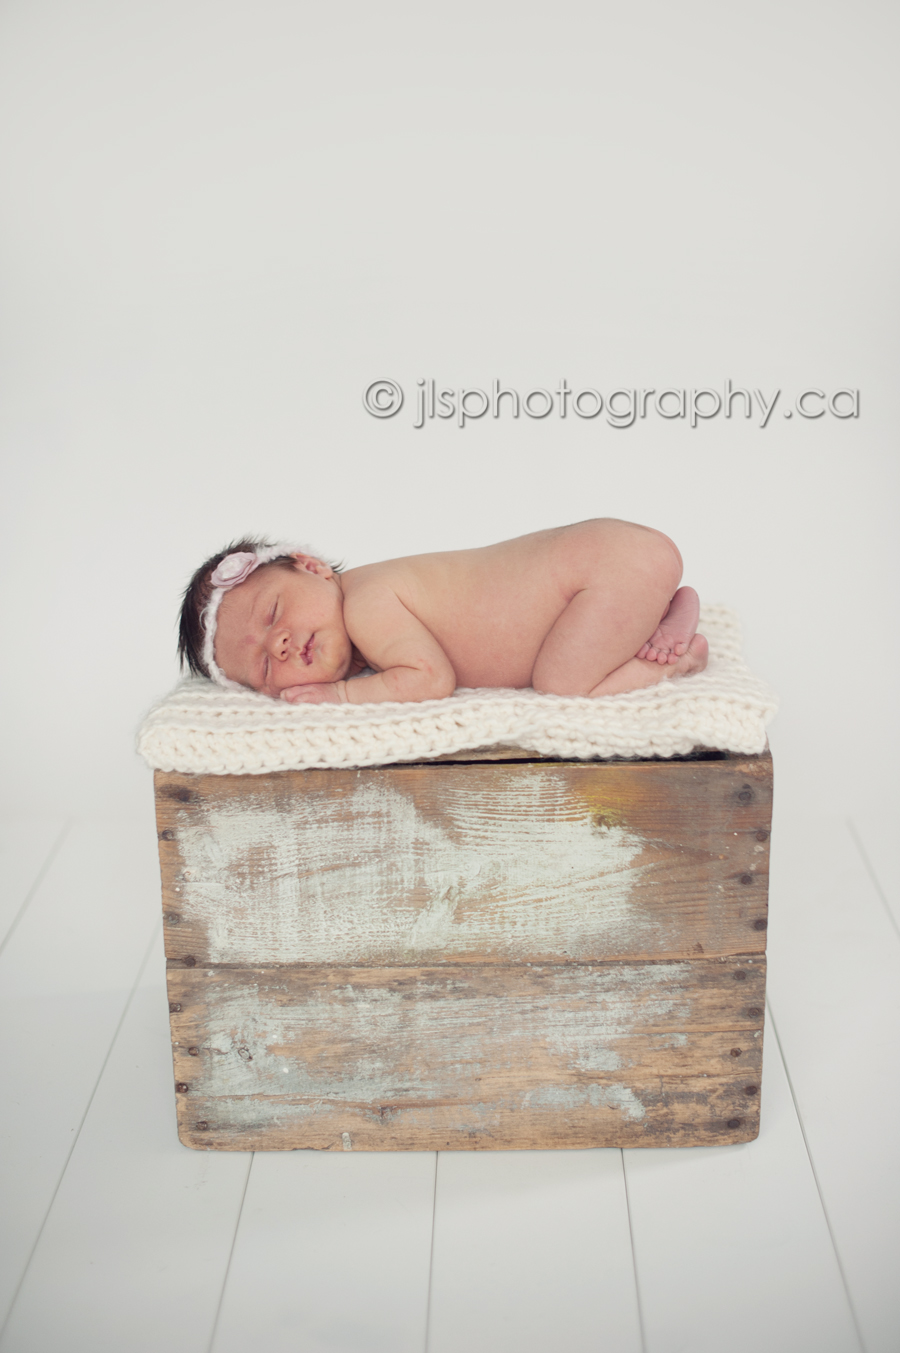 Vancouver Newborn Photography, Lower Mainland Newborn Photographer, White Rock Newborn Photographer, Surrey Newborn Photographer